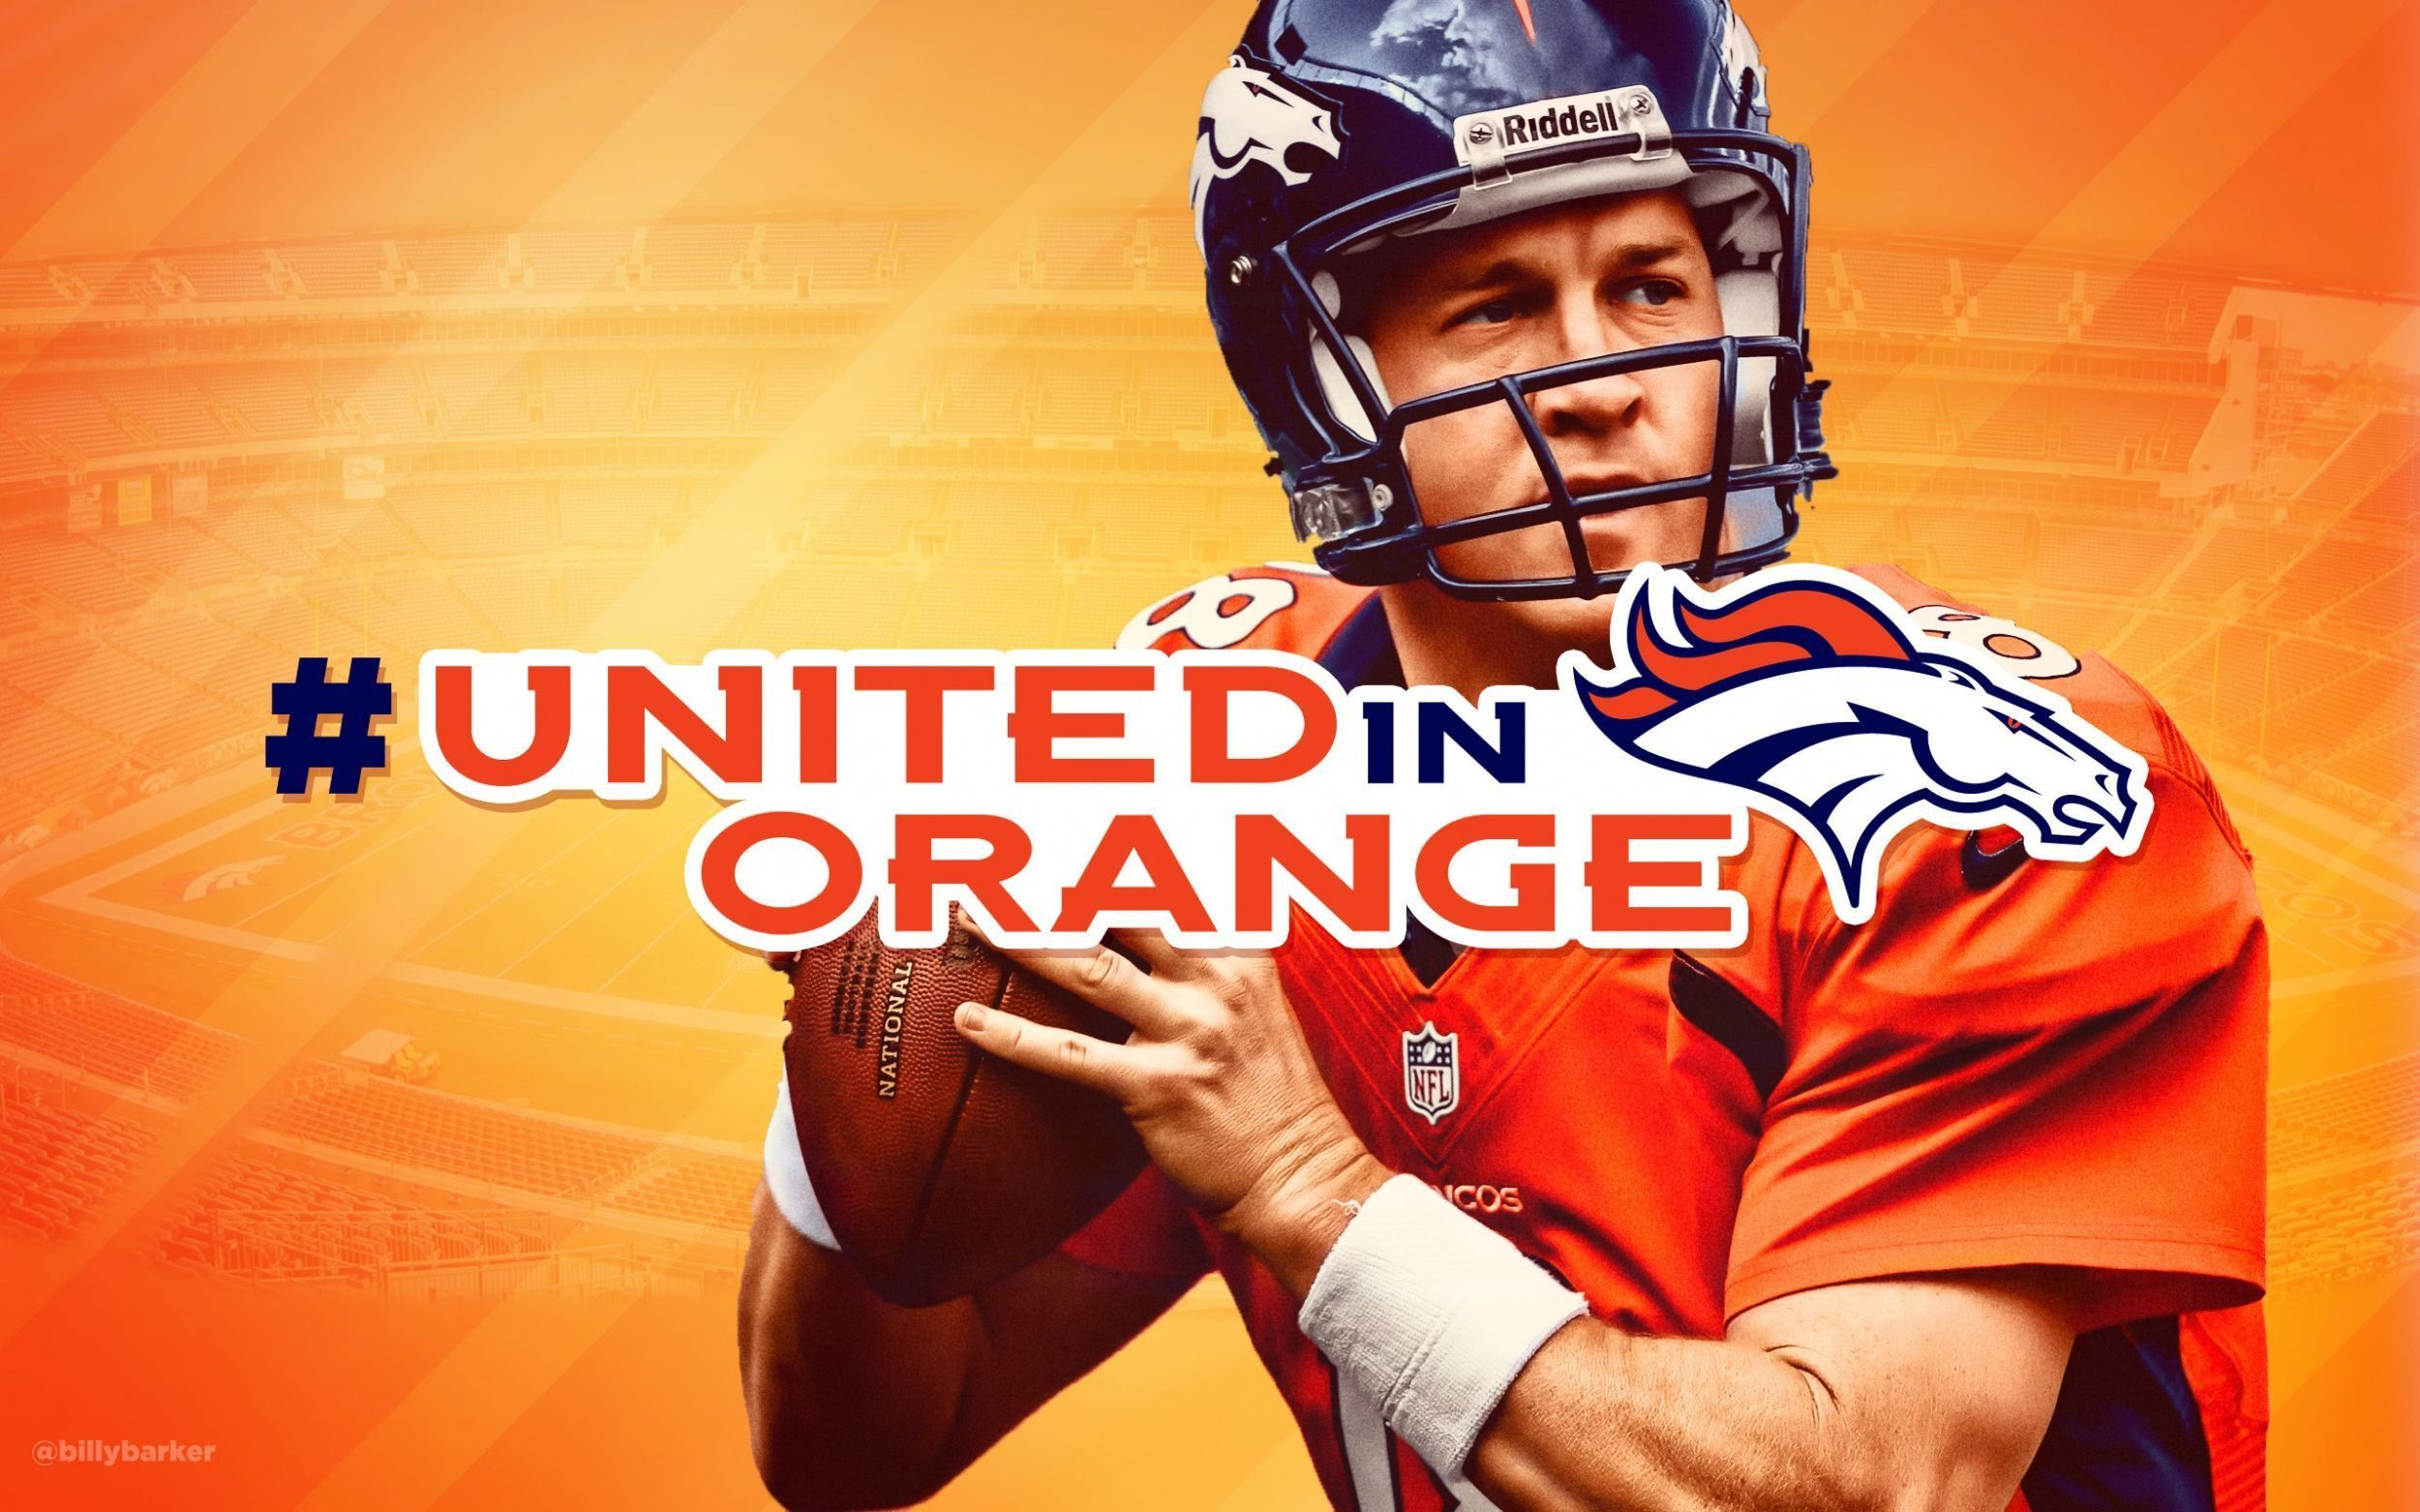 Res: 2500x1562, High Quality Denver Broncos Backgrounds 1101.93 Kb, Wallpapers and Pictures  – download for free